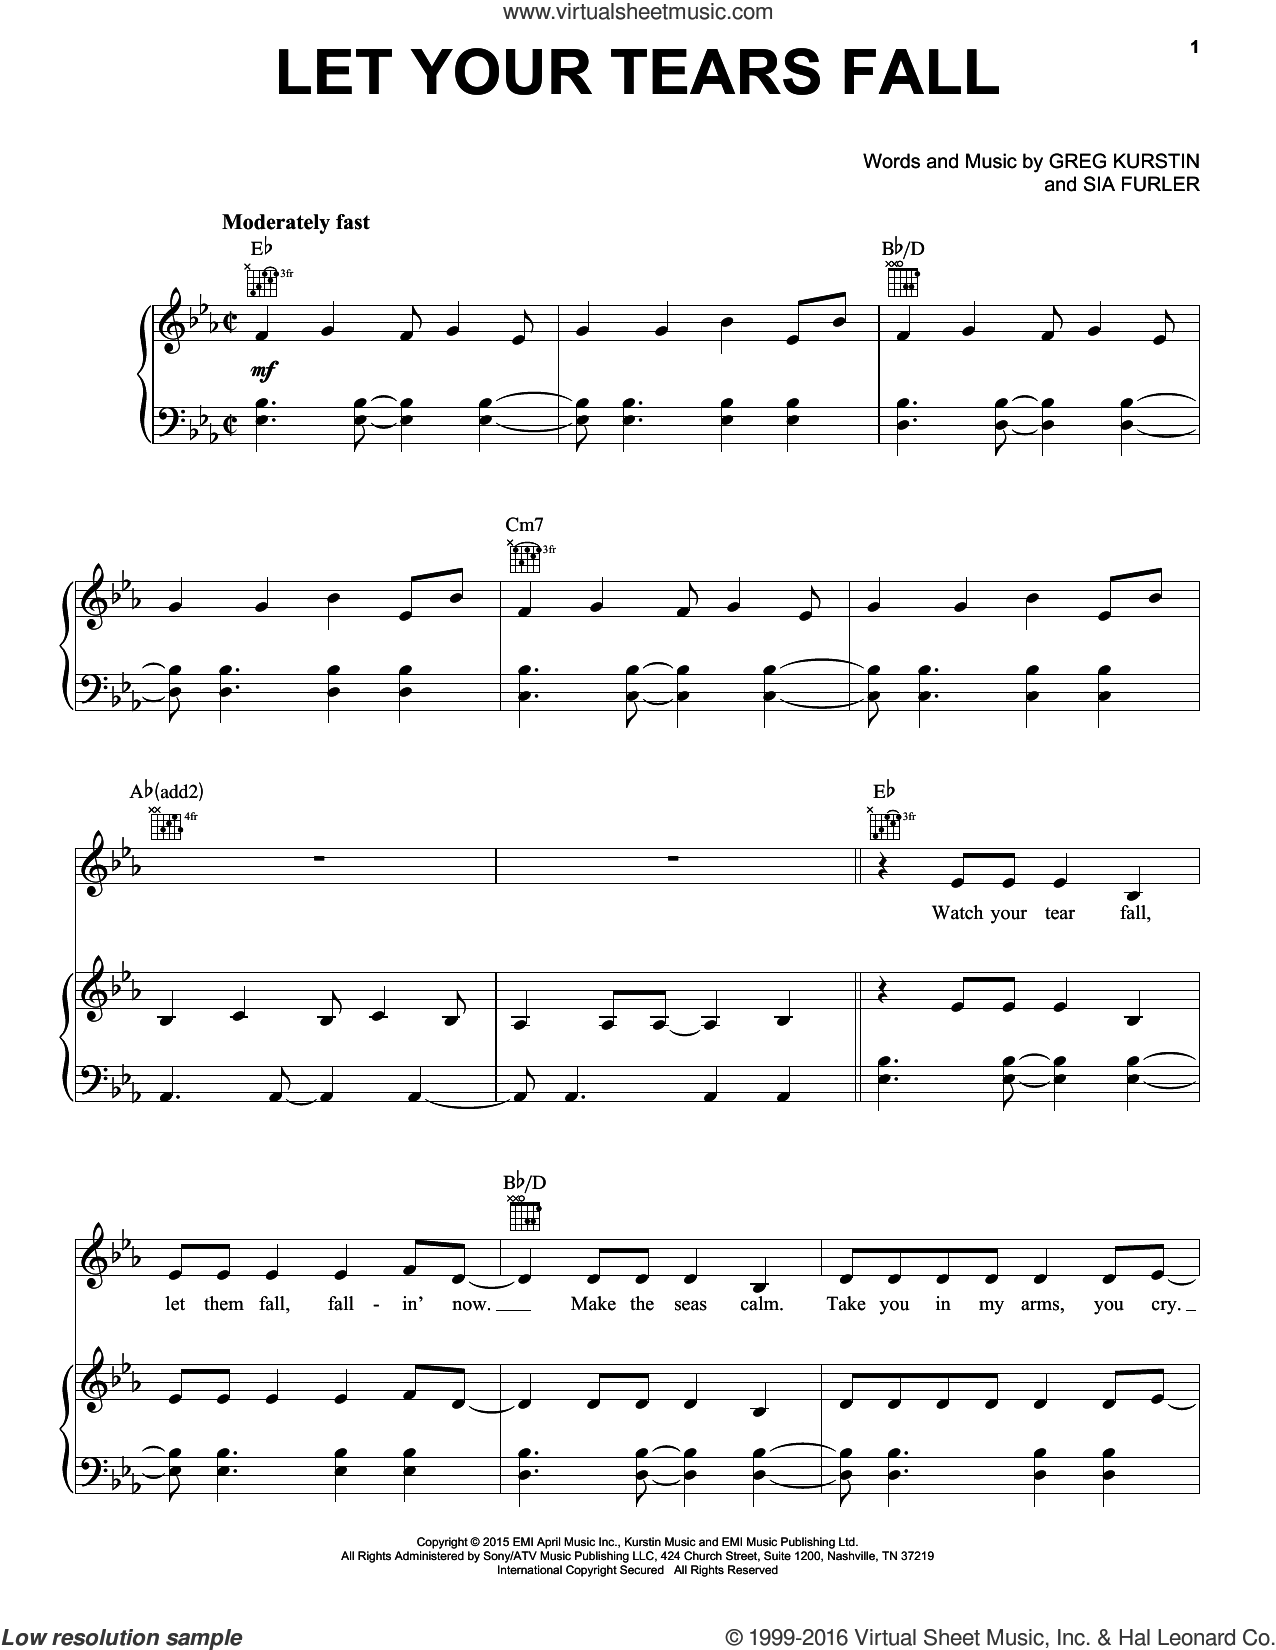 Let Your Tears Fall sheet music for voice, piano or guitar by Kelly Clarkson, Greg Kurstin and Sia Furler, intermediate skill level